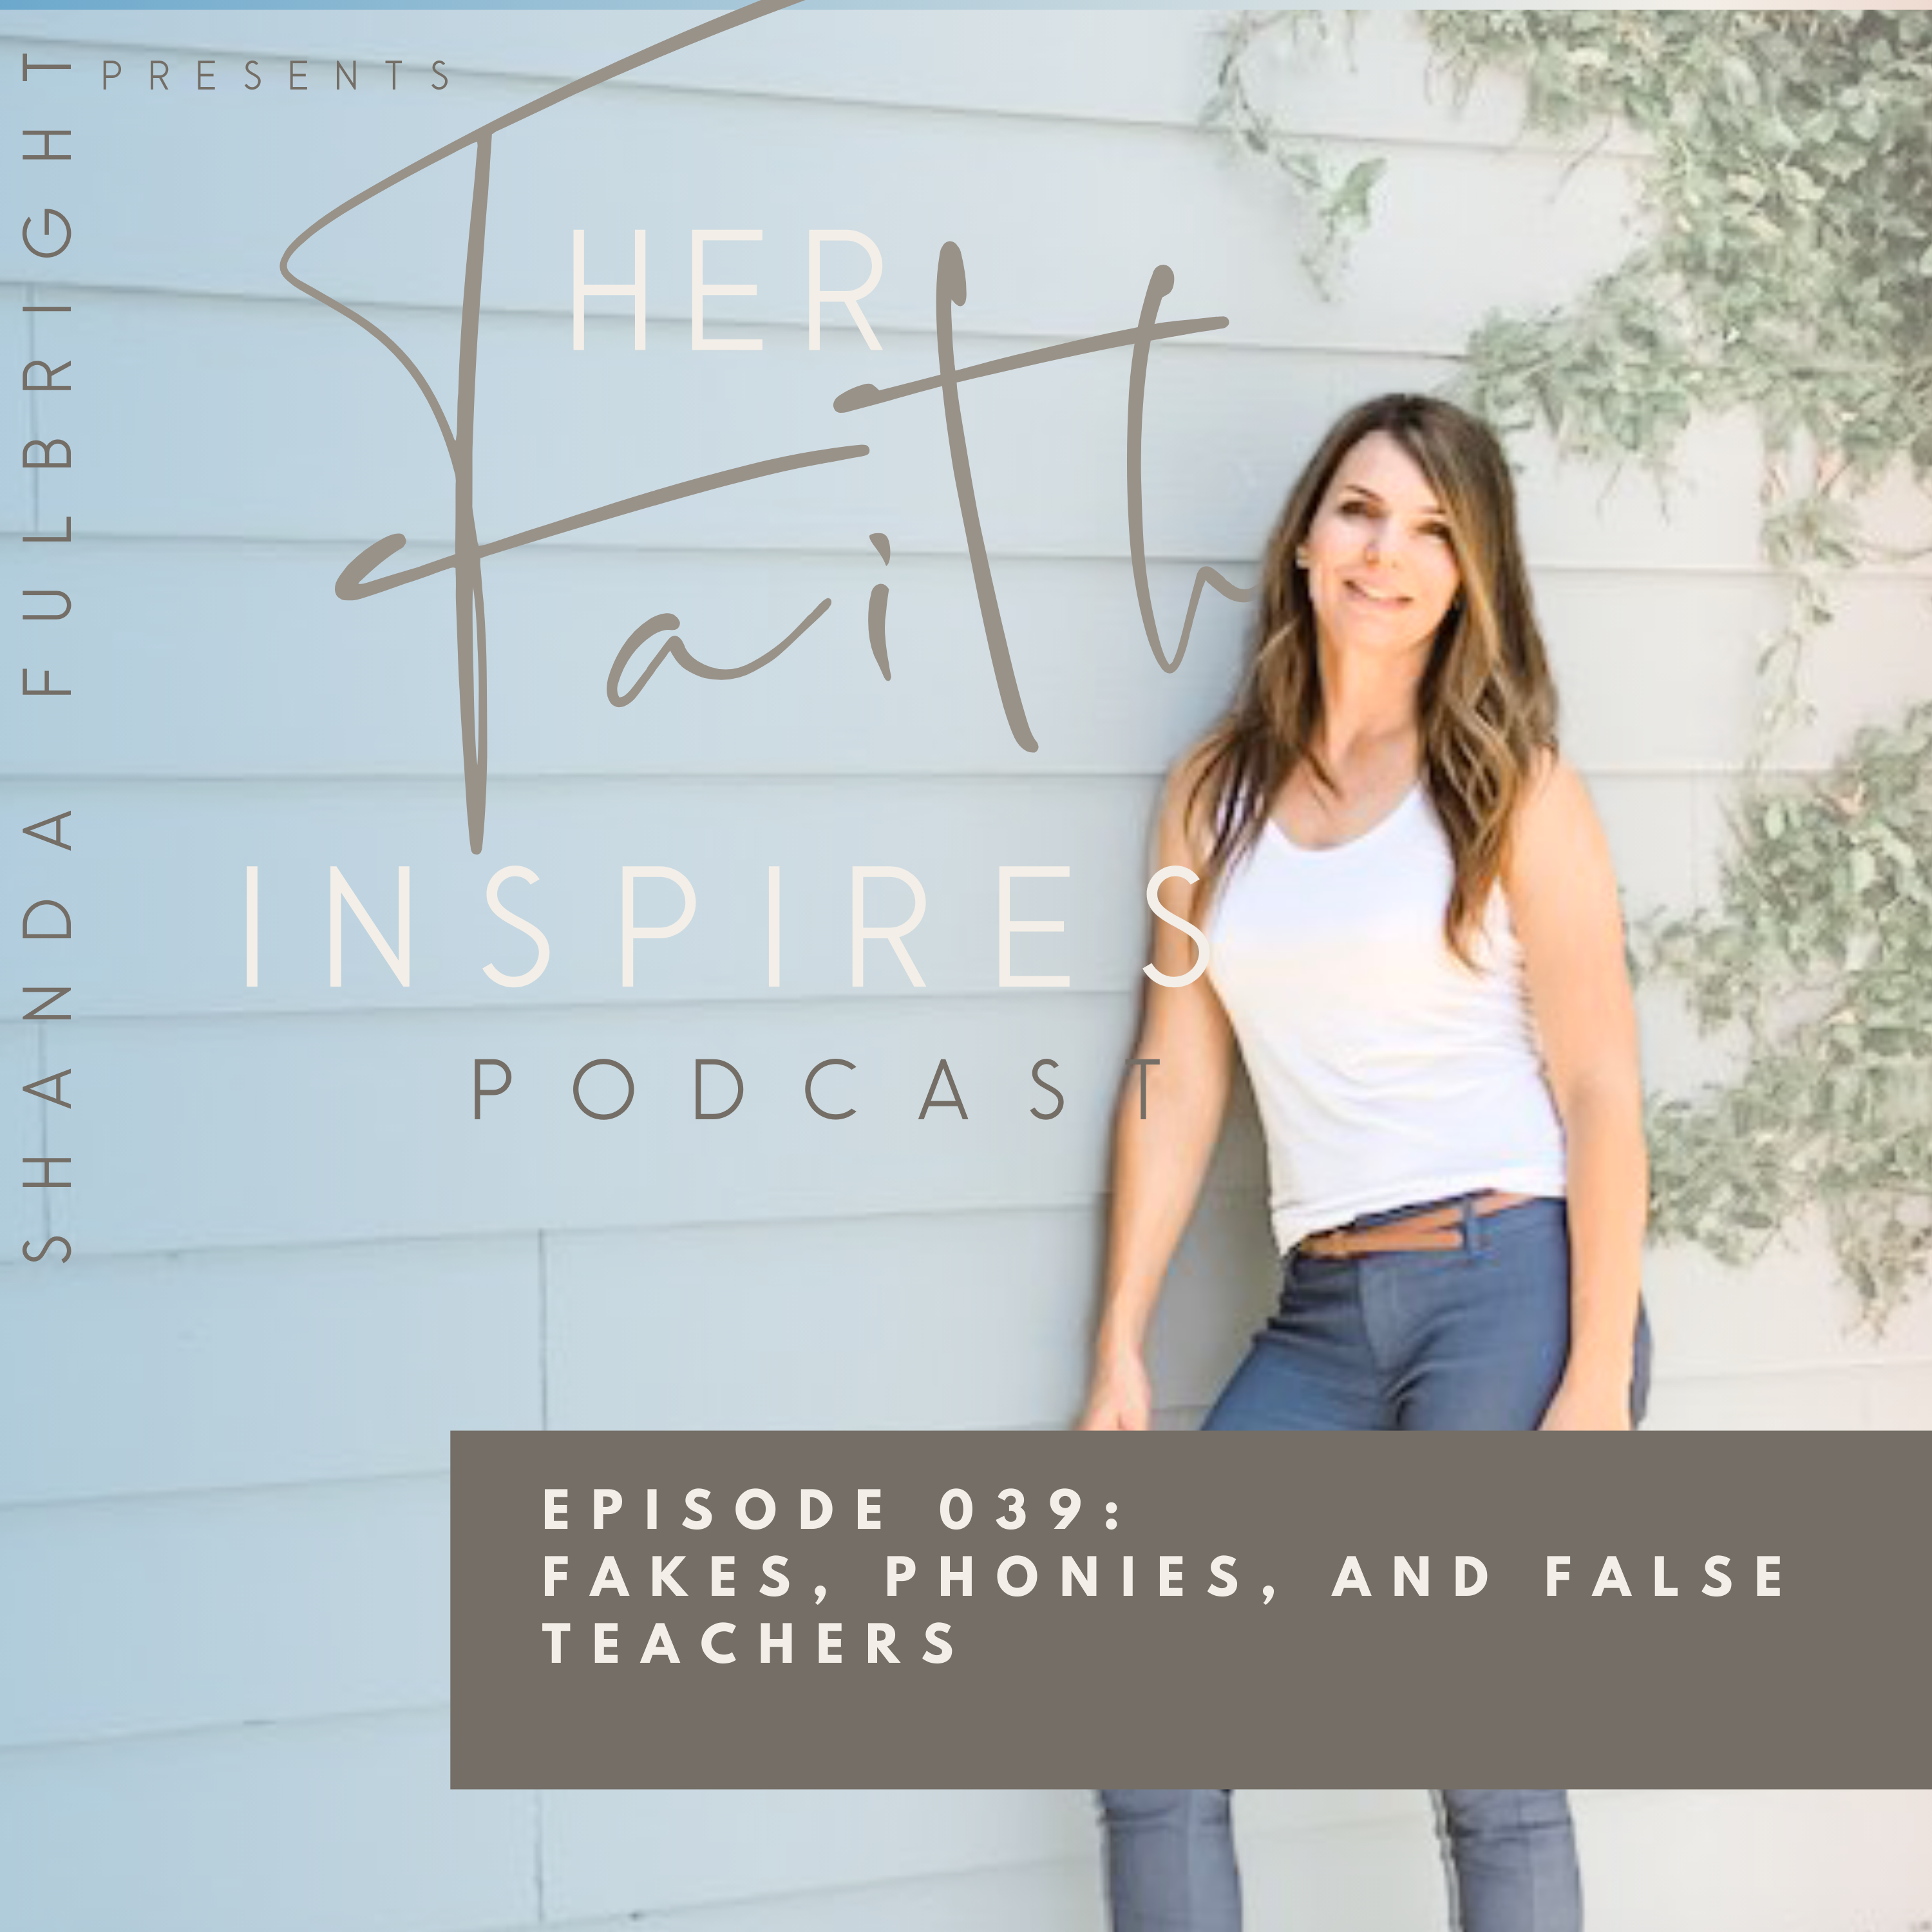 SF Podcast Episode39 - HER FAITH INSPIRES 039 : Fakes, phonies, and false teachers